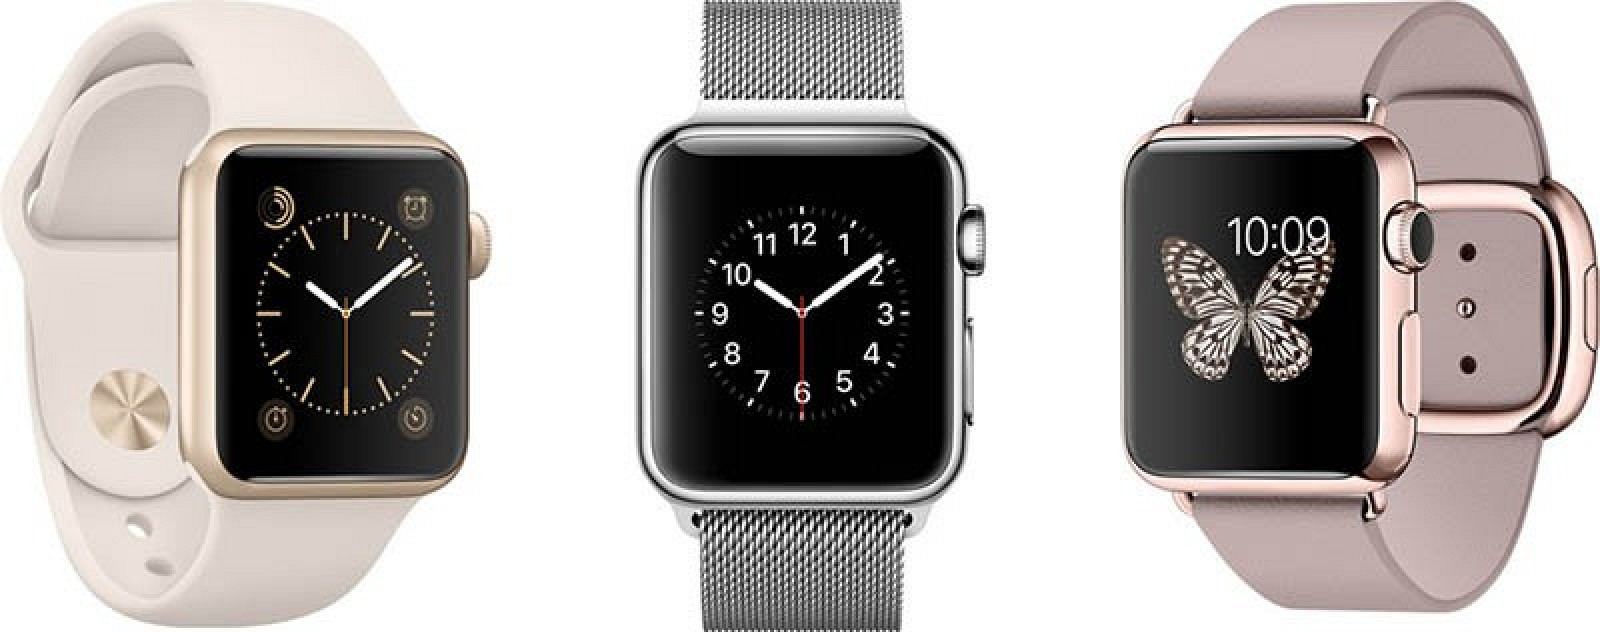 Apple Watch Launches In Saudi Arabia And United Arab Emirates On October 22